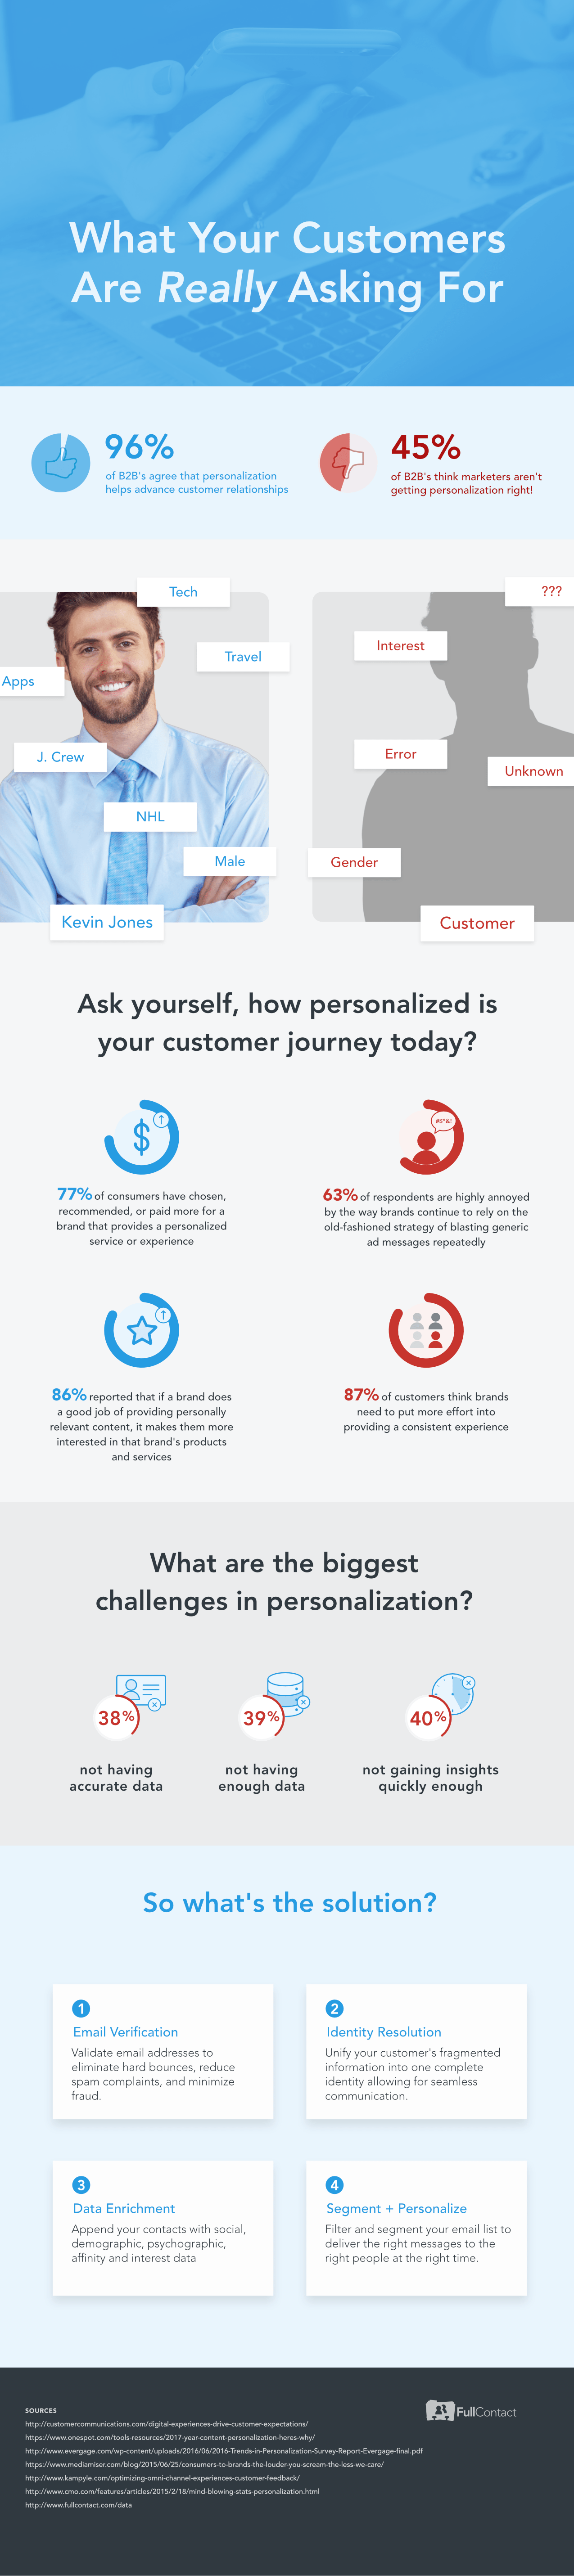 Ask yourself, how personalized is your customer journey? 96% of B2B's agree that personalization helps advance customer relationships but only 55% of B2B's think marketers are getting personalization right.